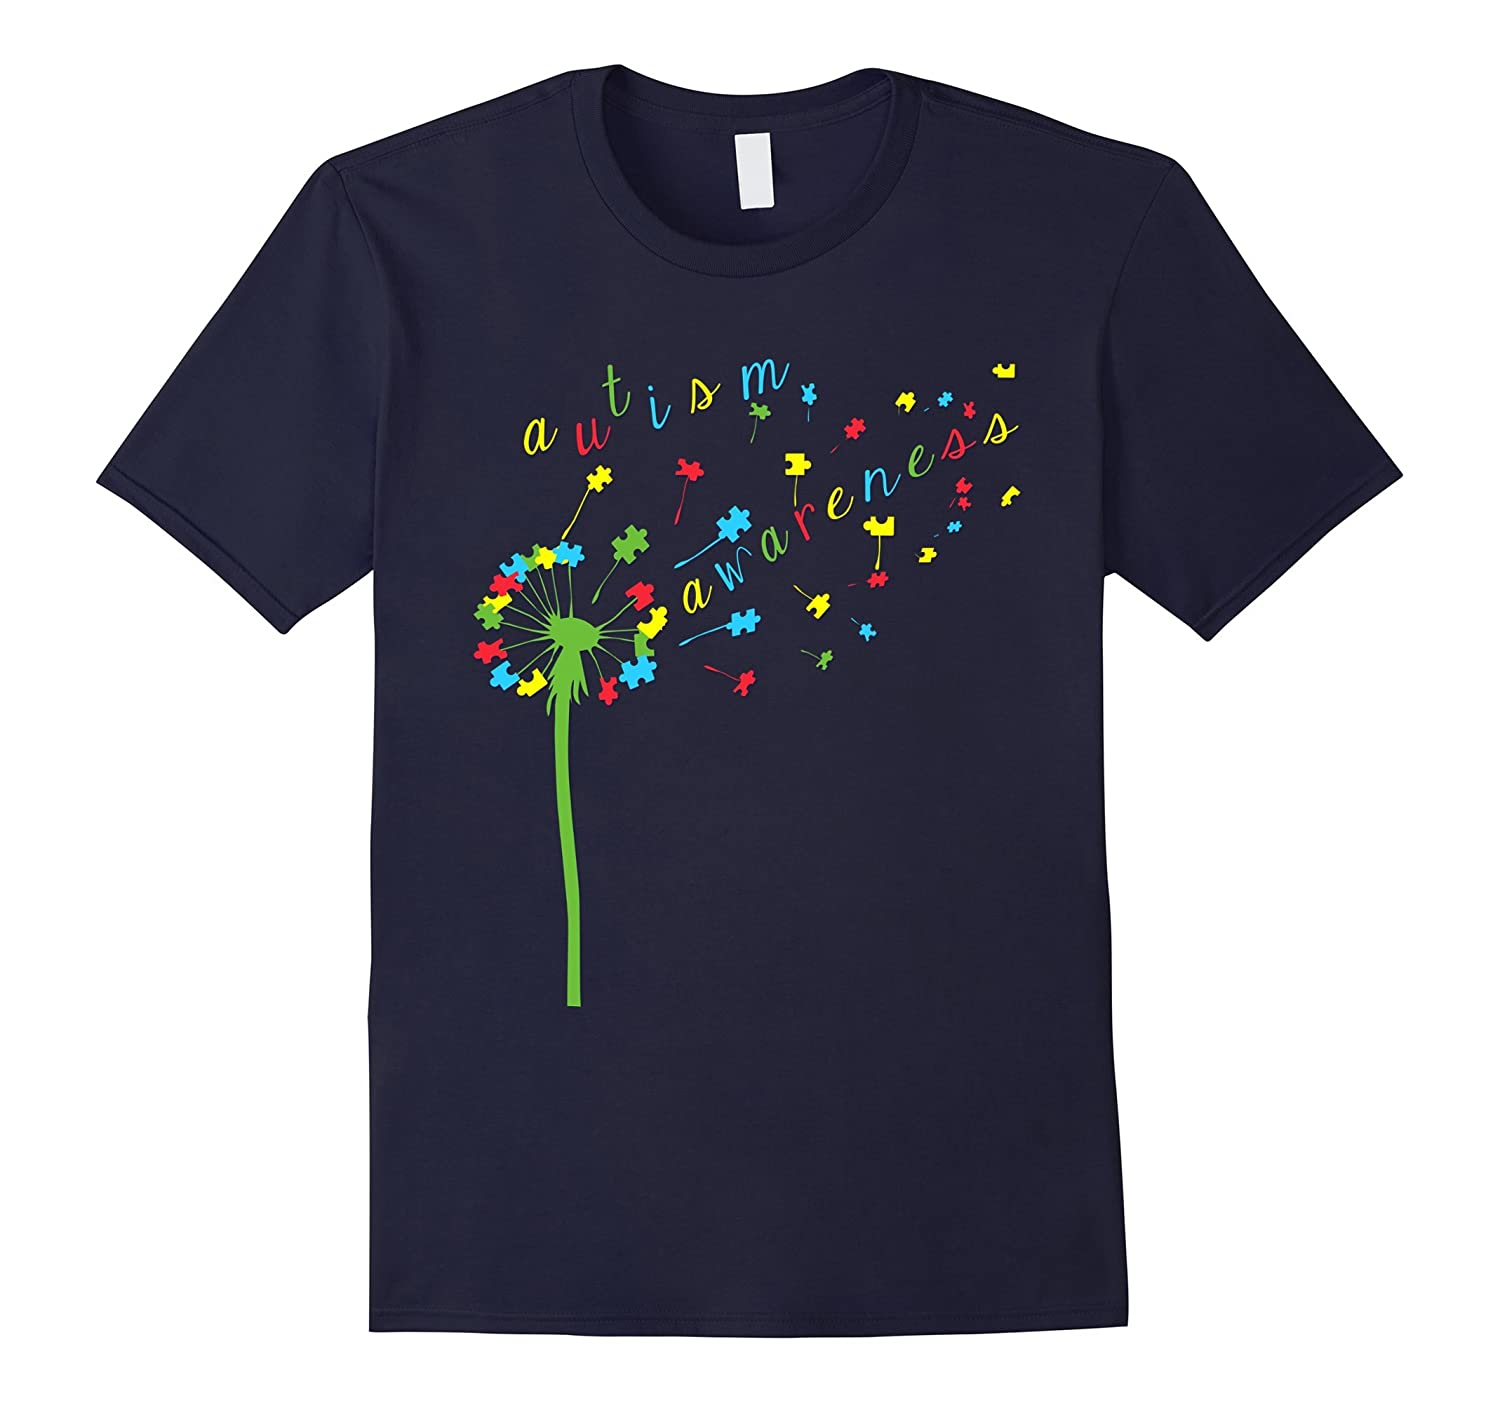 Autism Shirts - Autism Awareness Ribbon T-shirts MomDadKid-CD